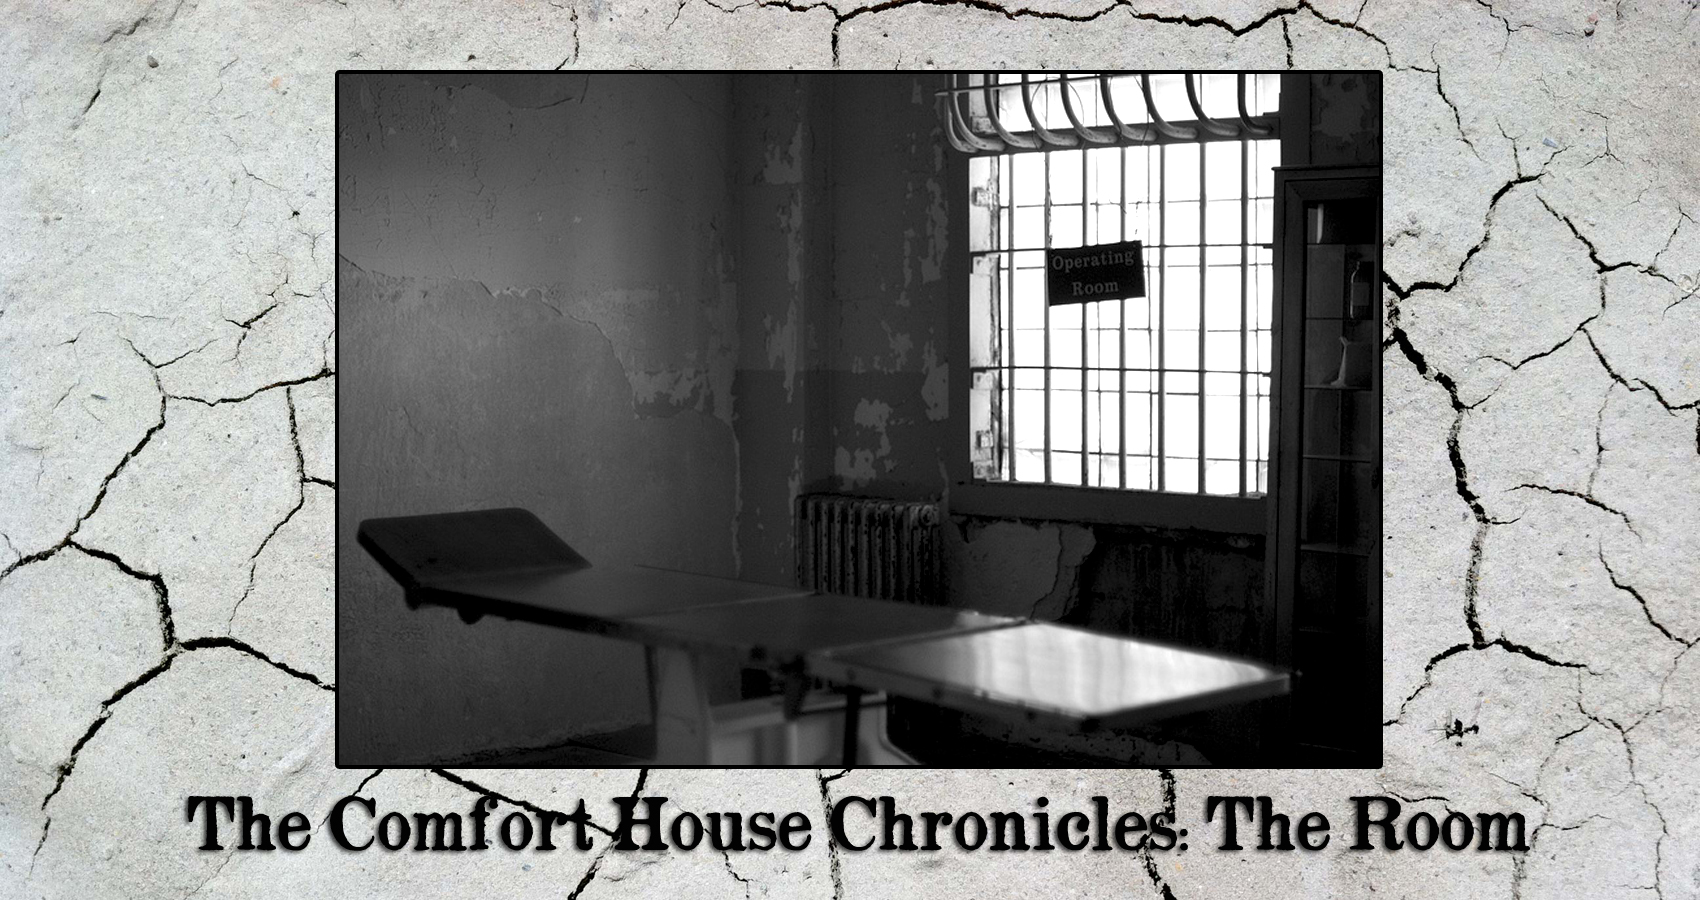 The Comfort House Chronicles: The Room by RayFed at Spillwords.com